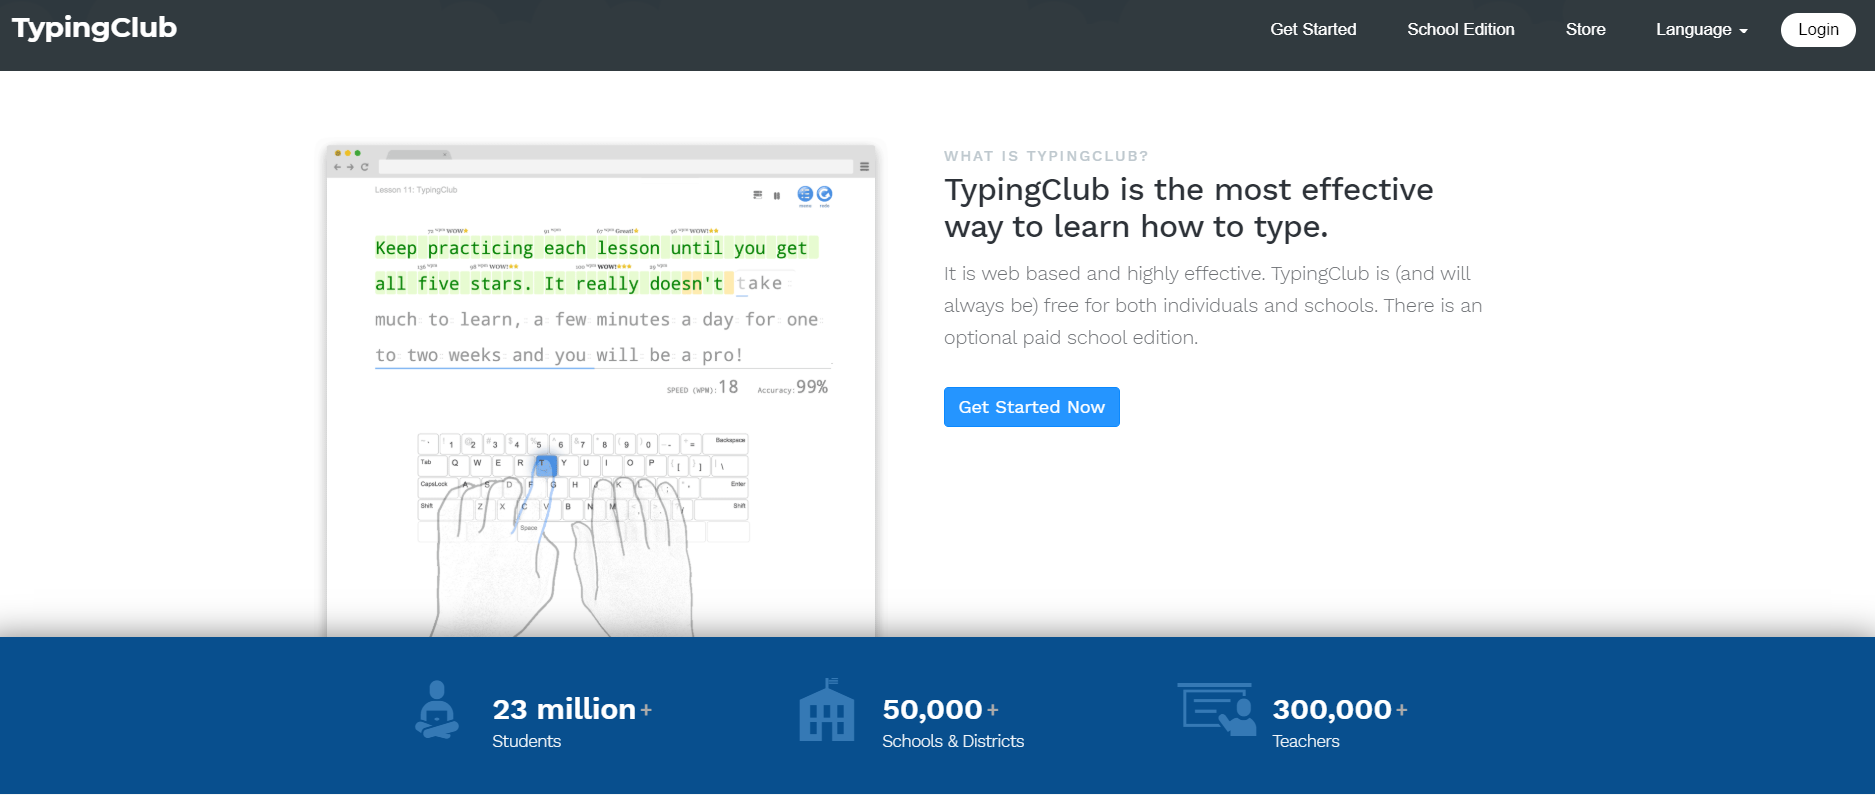 Landing page to enter the Typing Club website